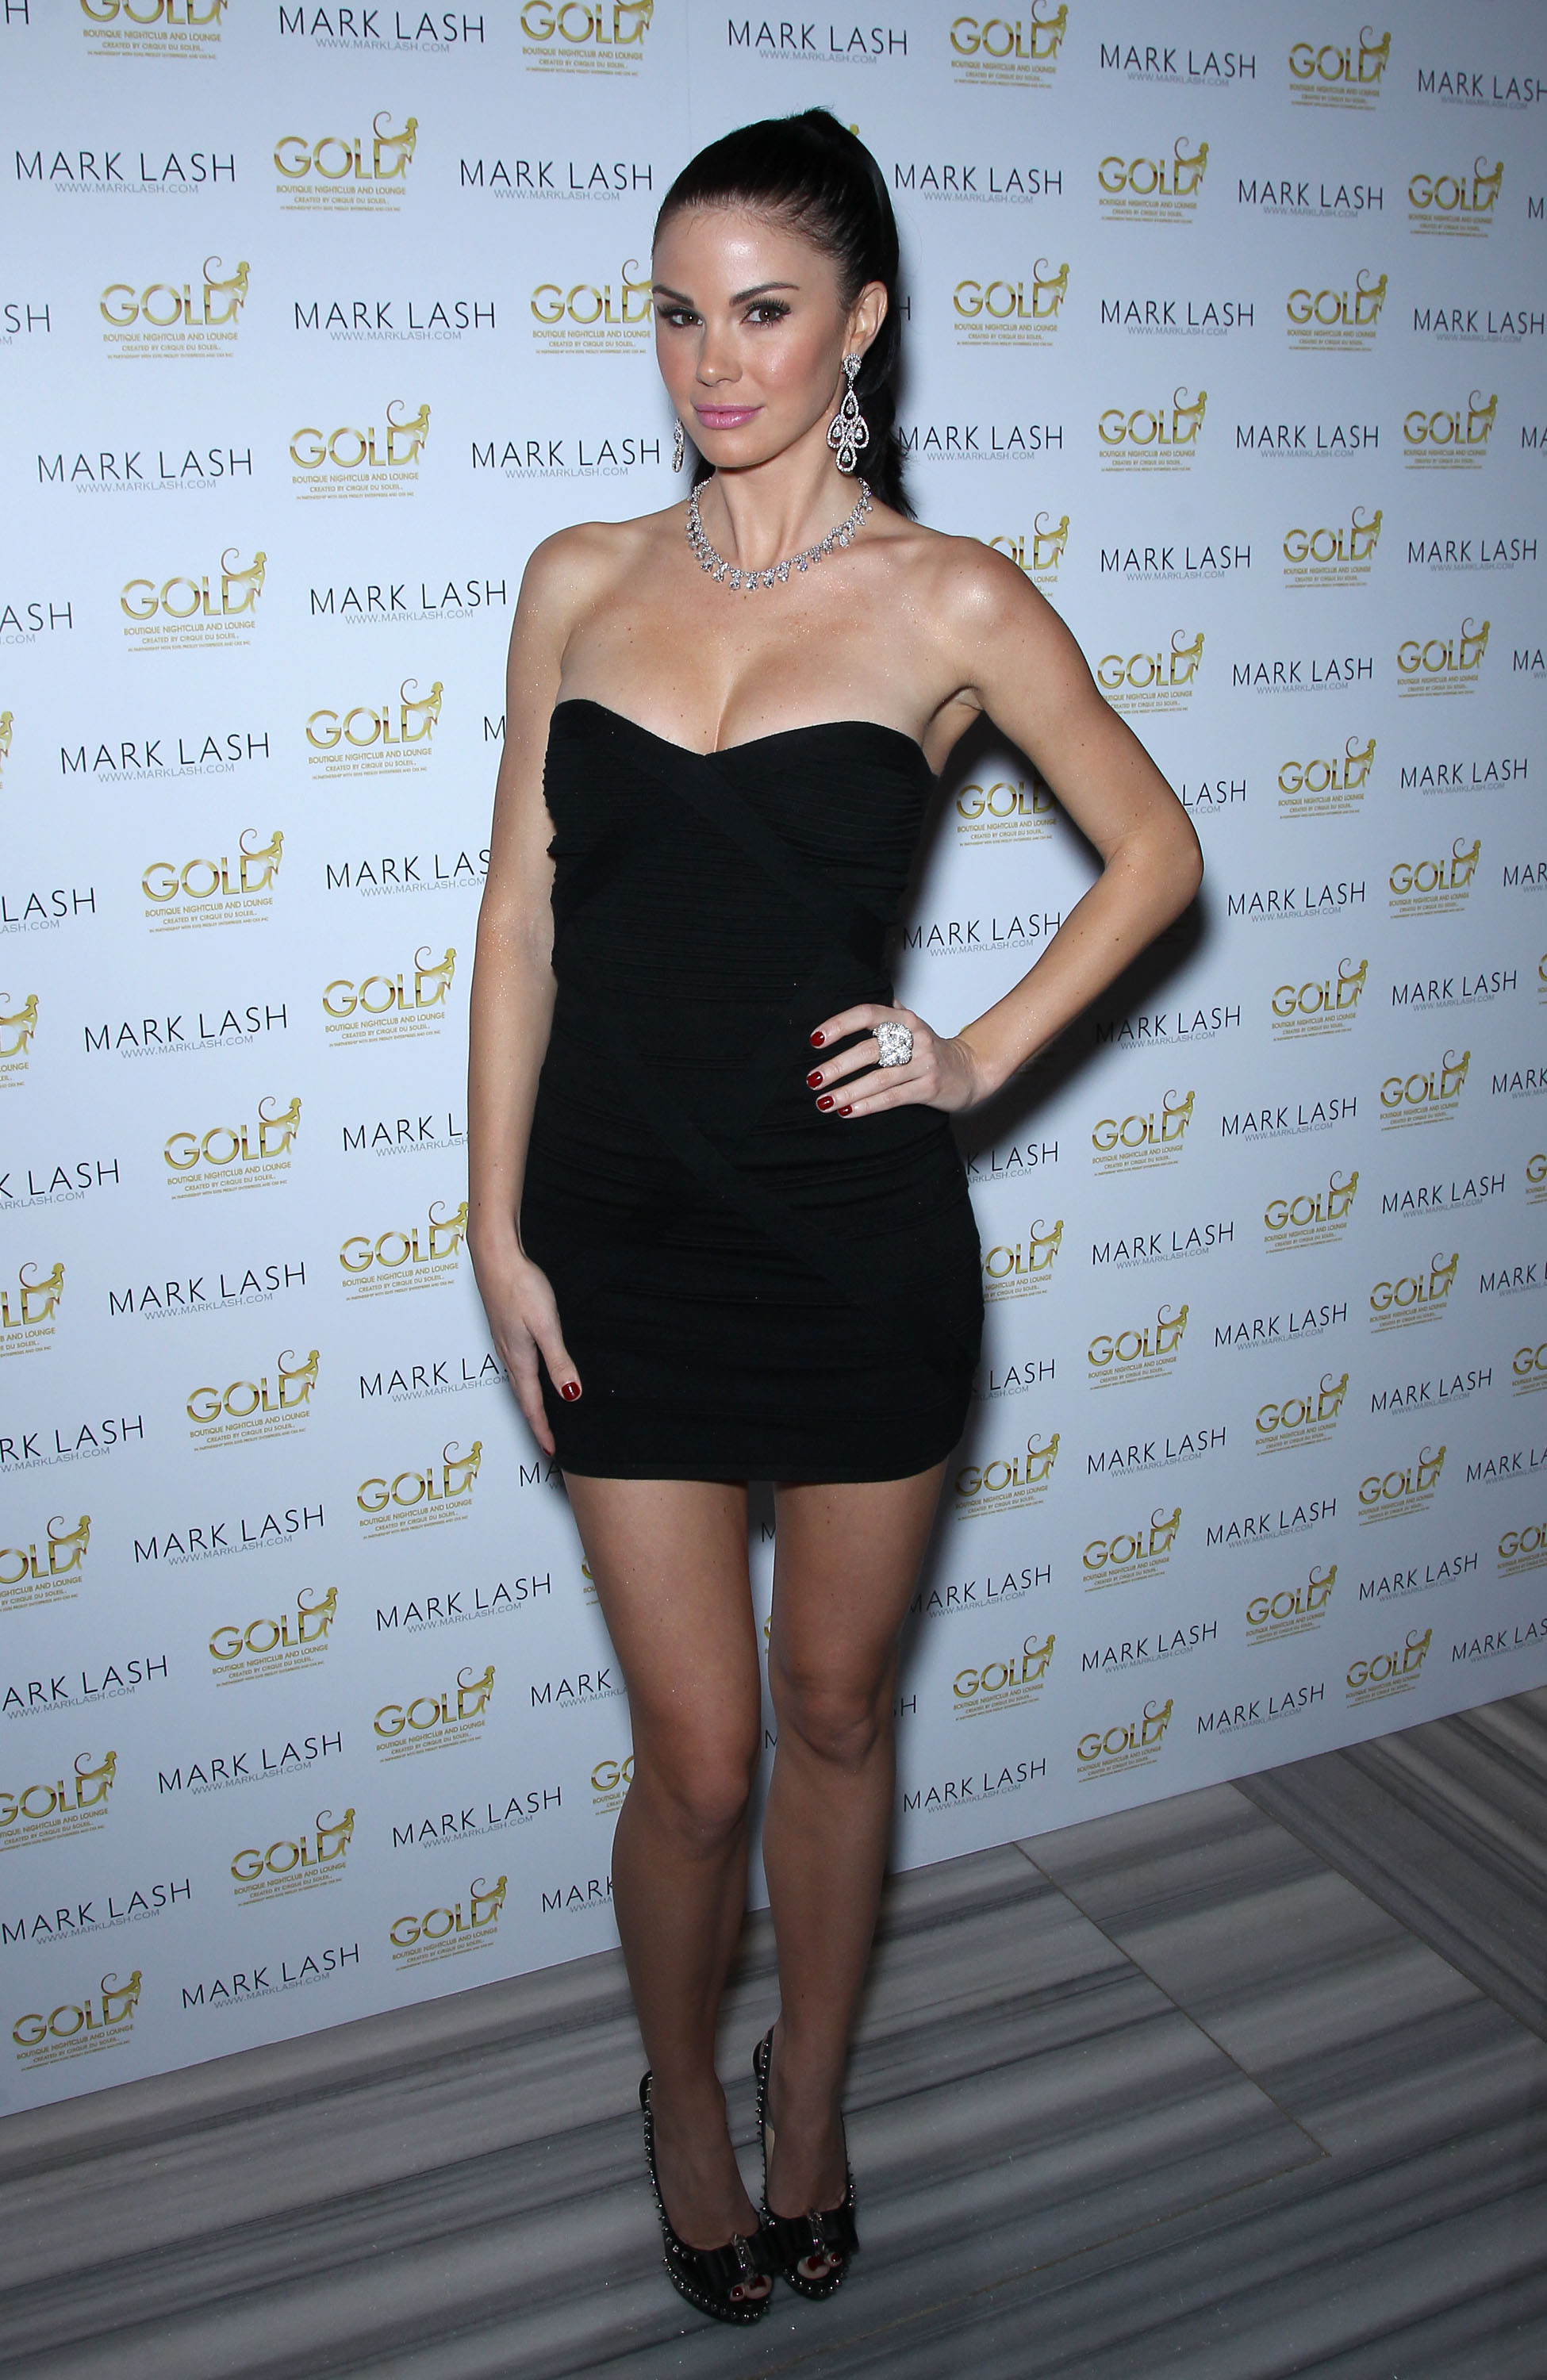 Jayde Nicole Black Dress Candids At Mark Lash Jewelry Showcase